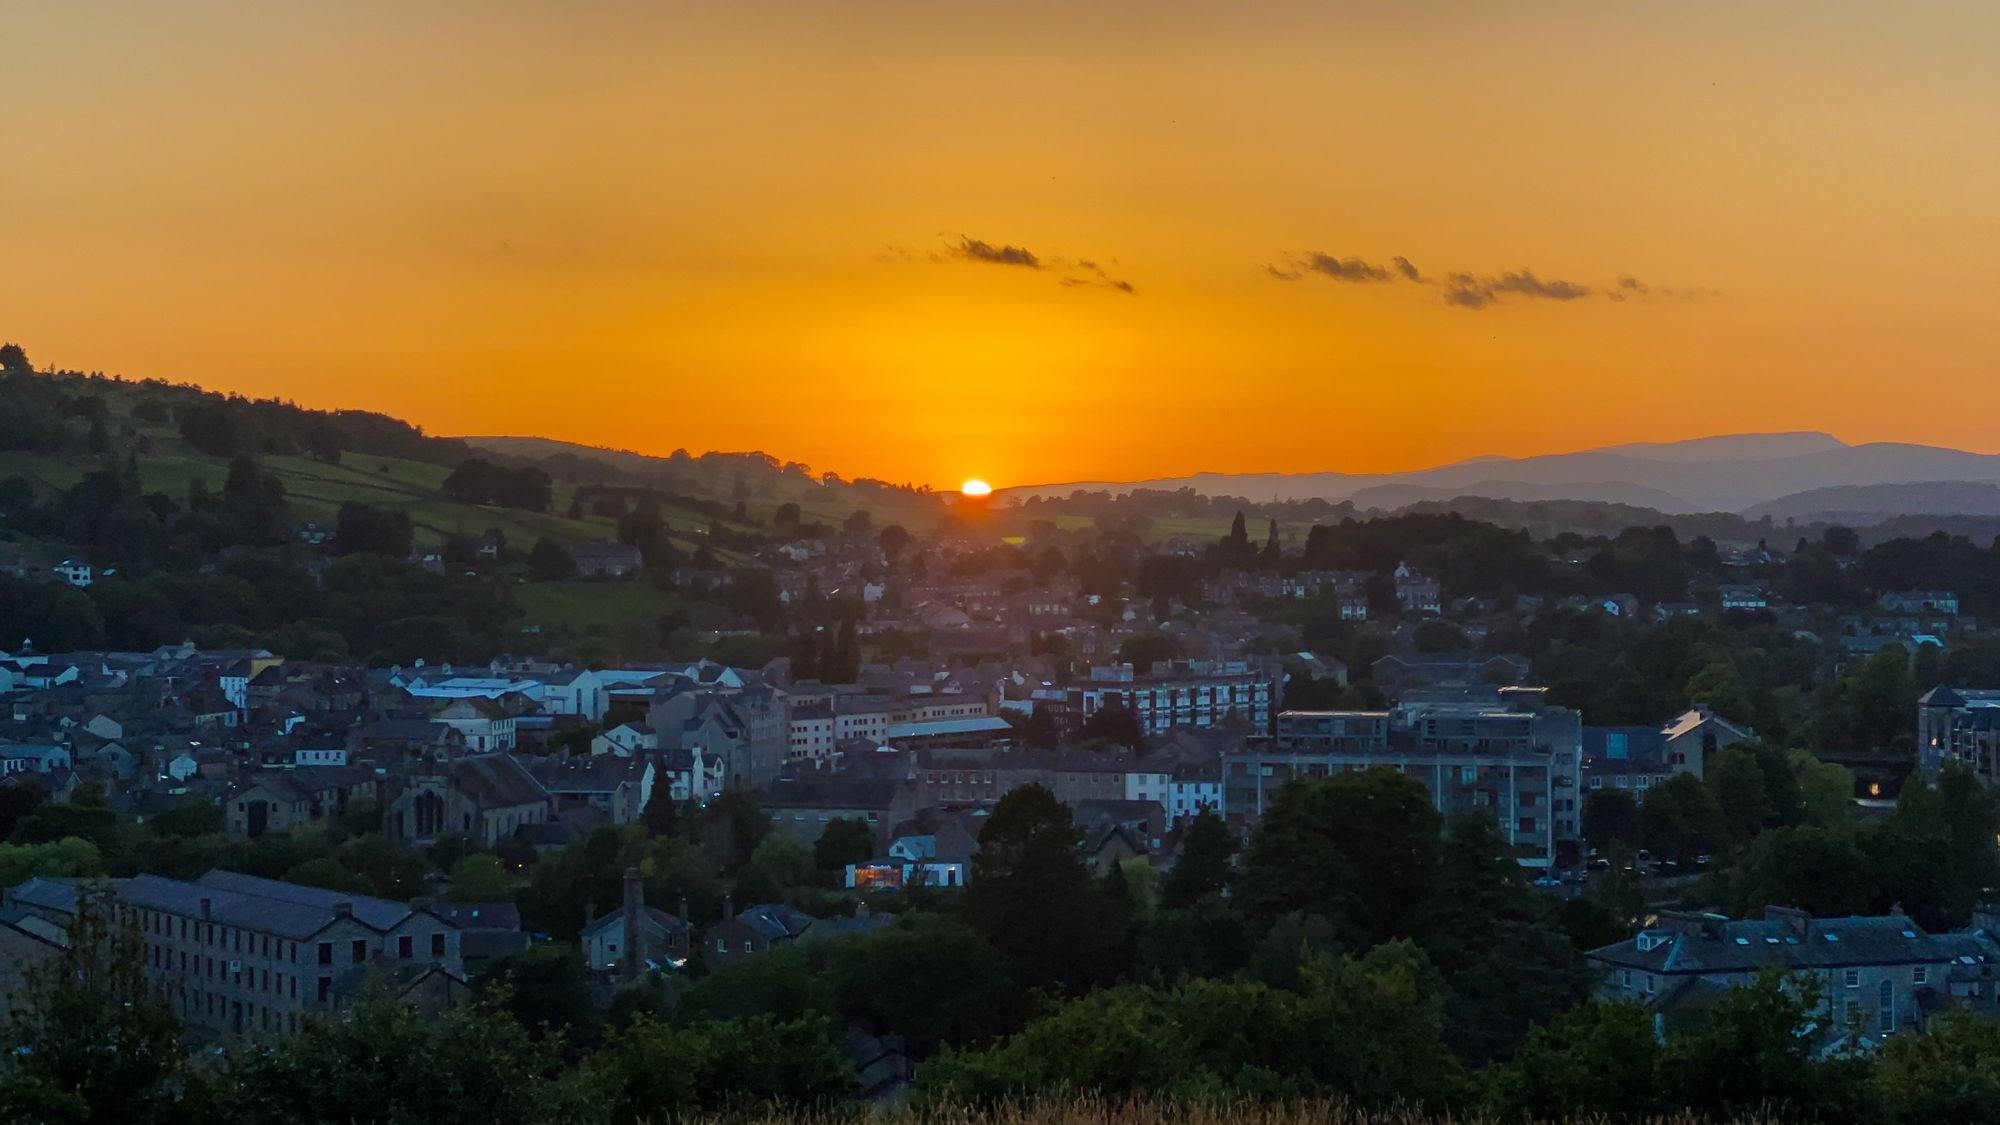 Sunset over Kendal, Lake District